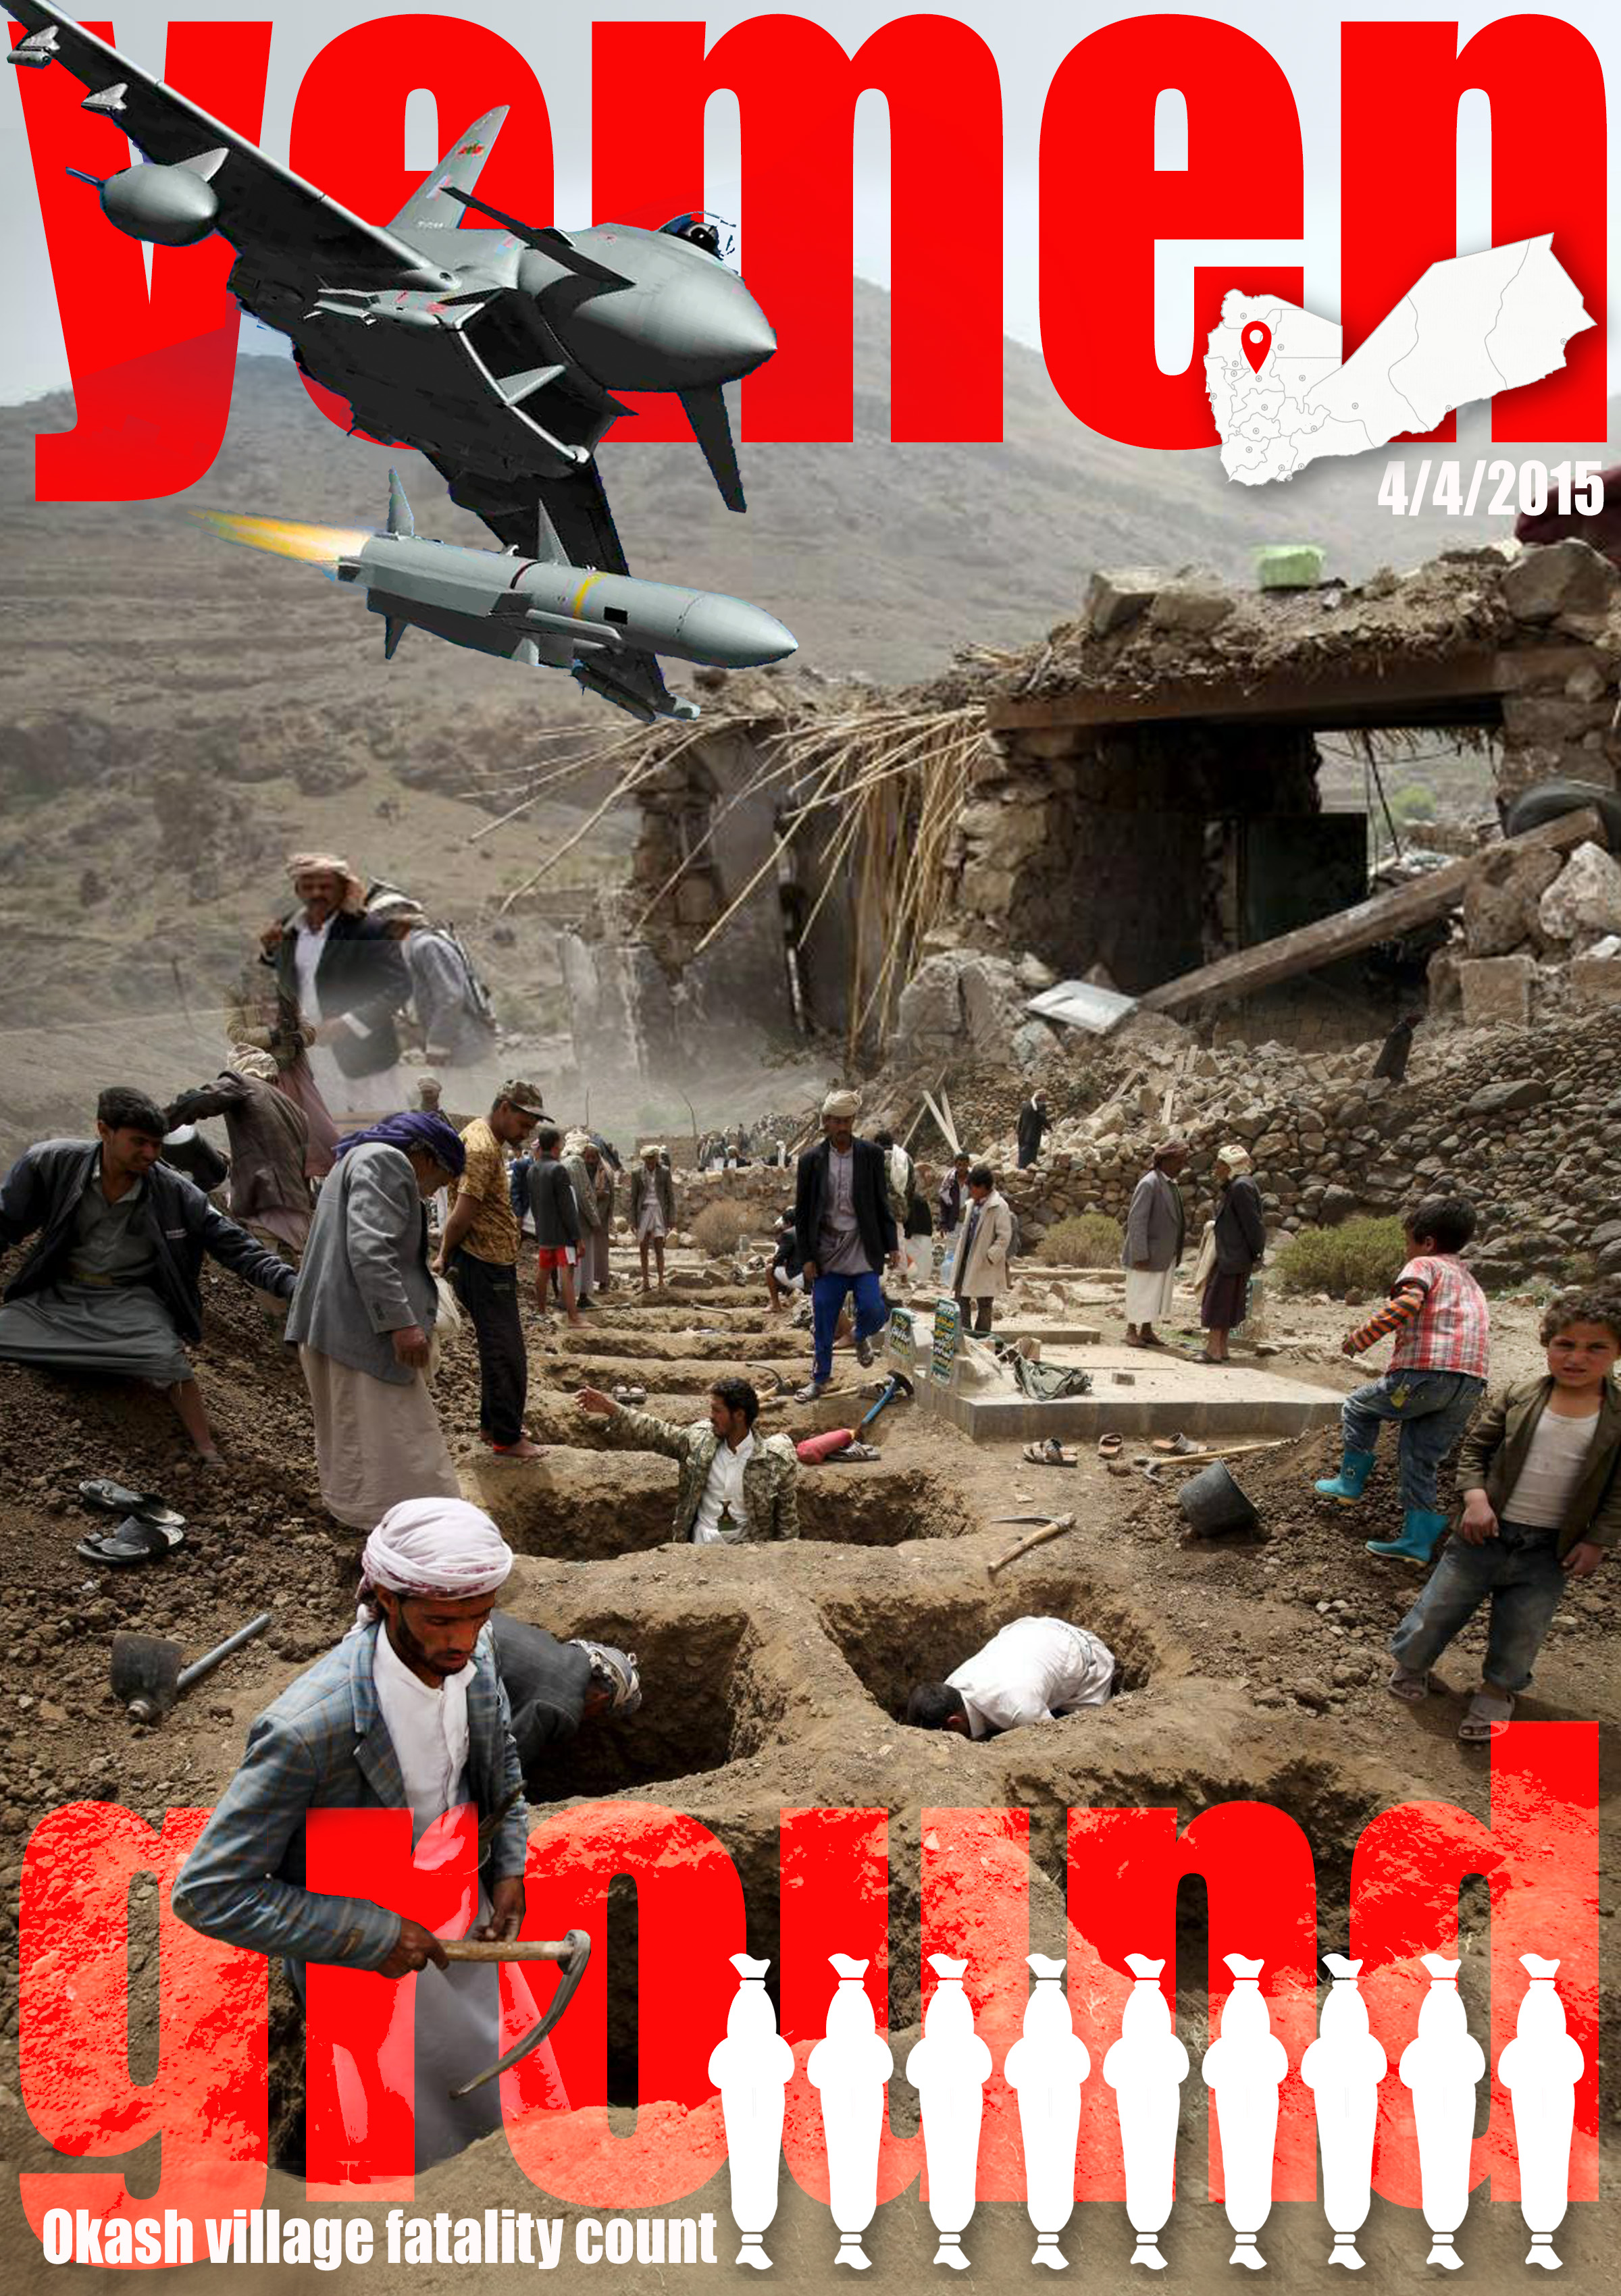 Yemen Ground Zero in Okash near Sanaa on 442015 =_16856412329_o